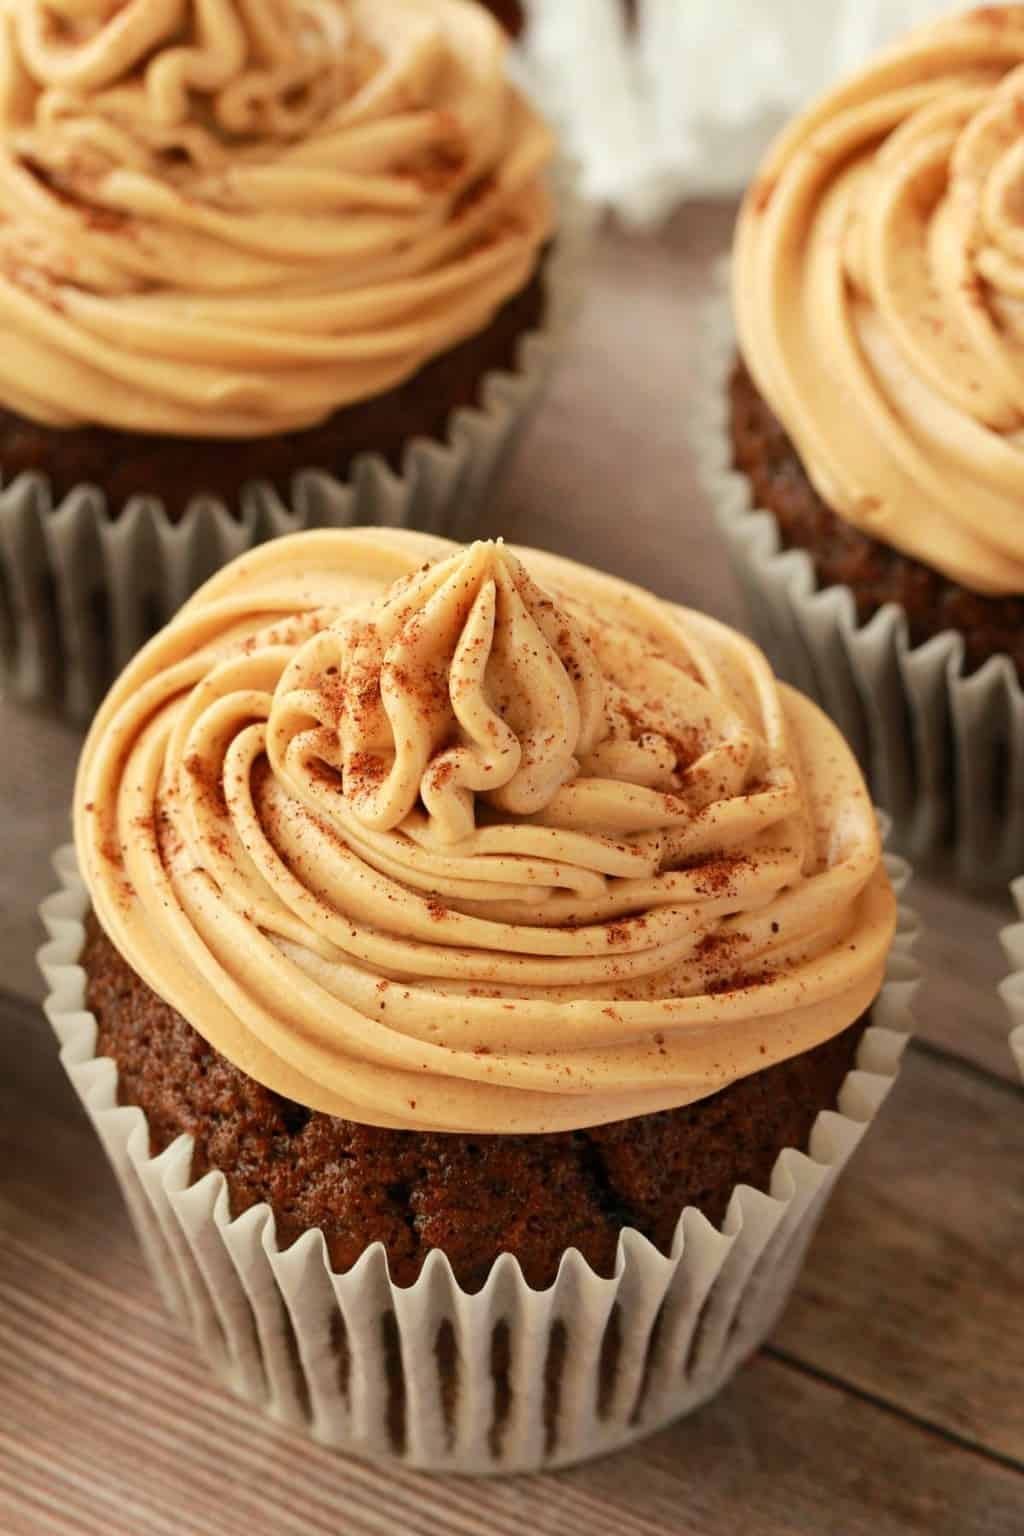 Vegan coffee cupcakes topped with coffee buttercream and cinnamon.